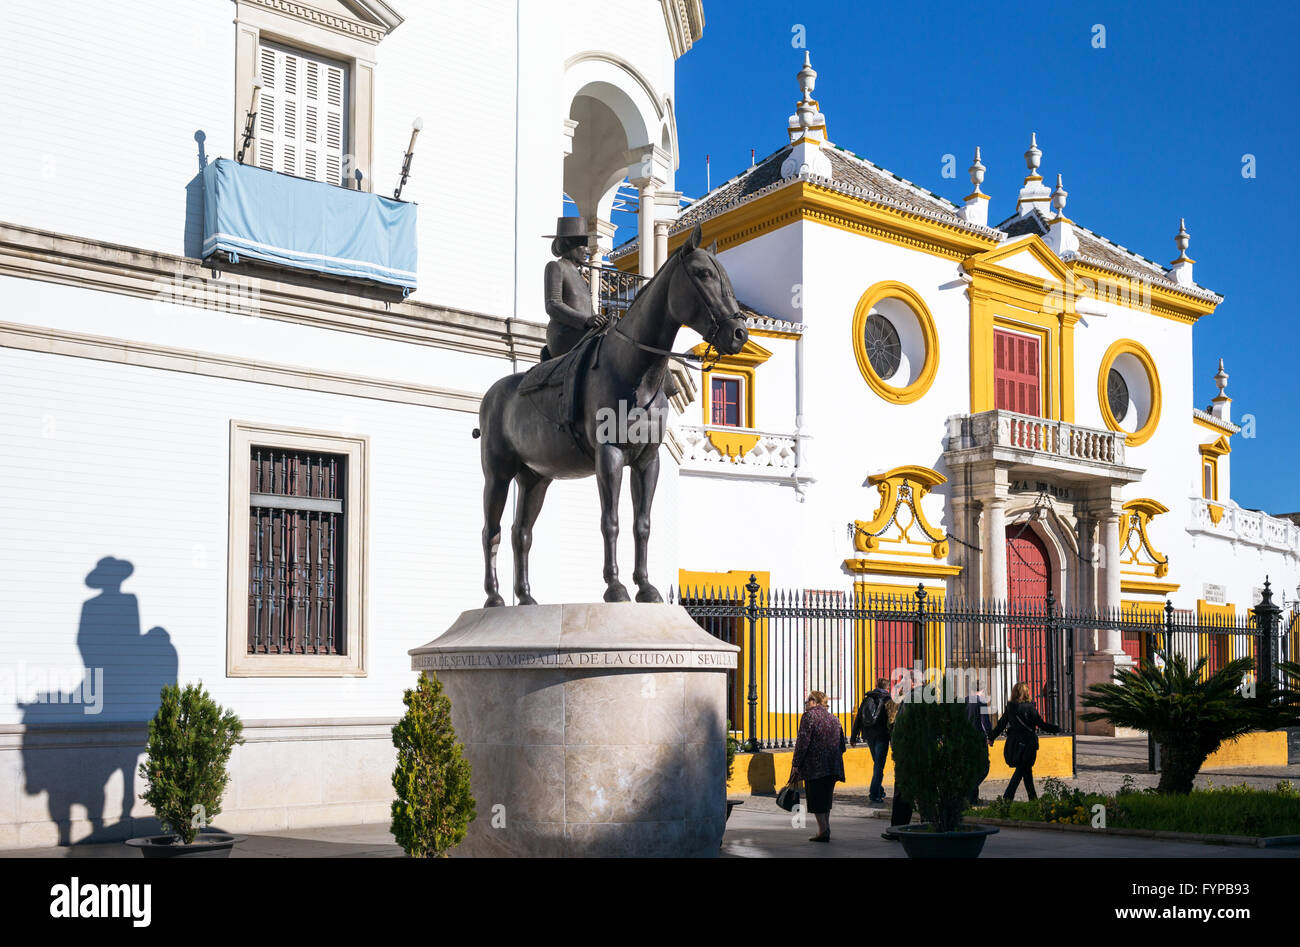 Spain, Andalusia, Seville, the statue of the Countess of Barcelona in front of  the Plaza de Toros (Bullring) and - Stock Image